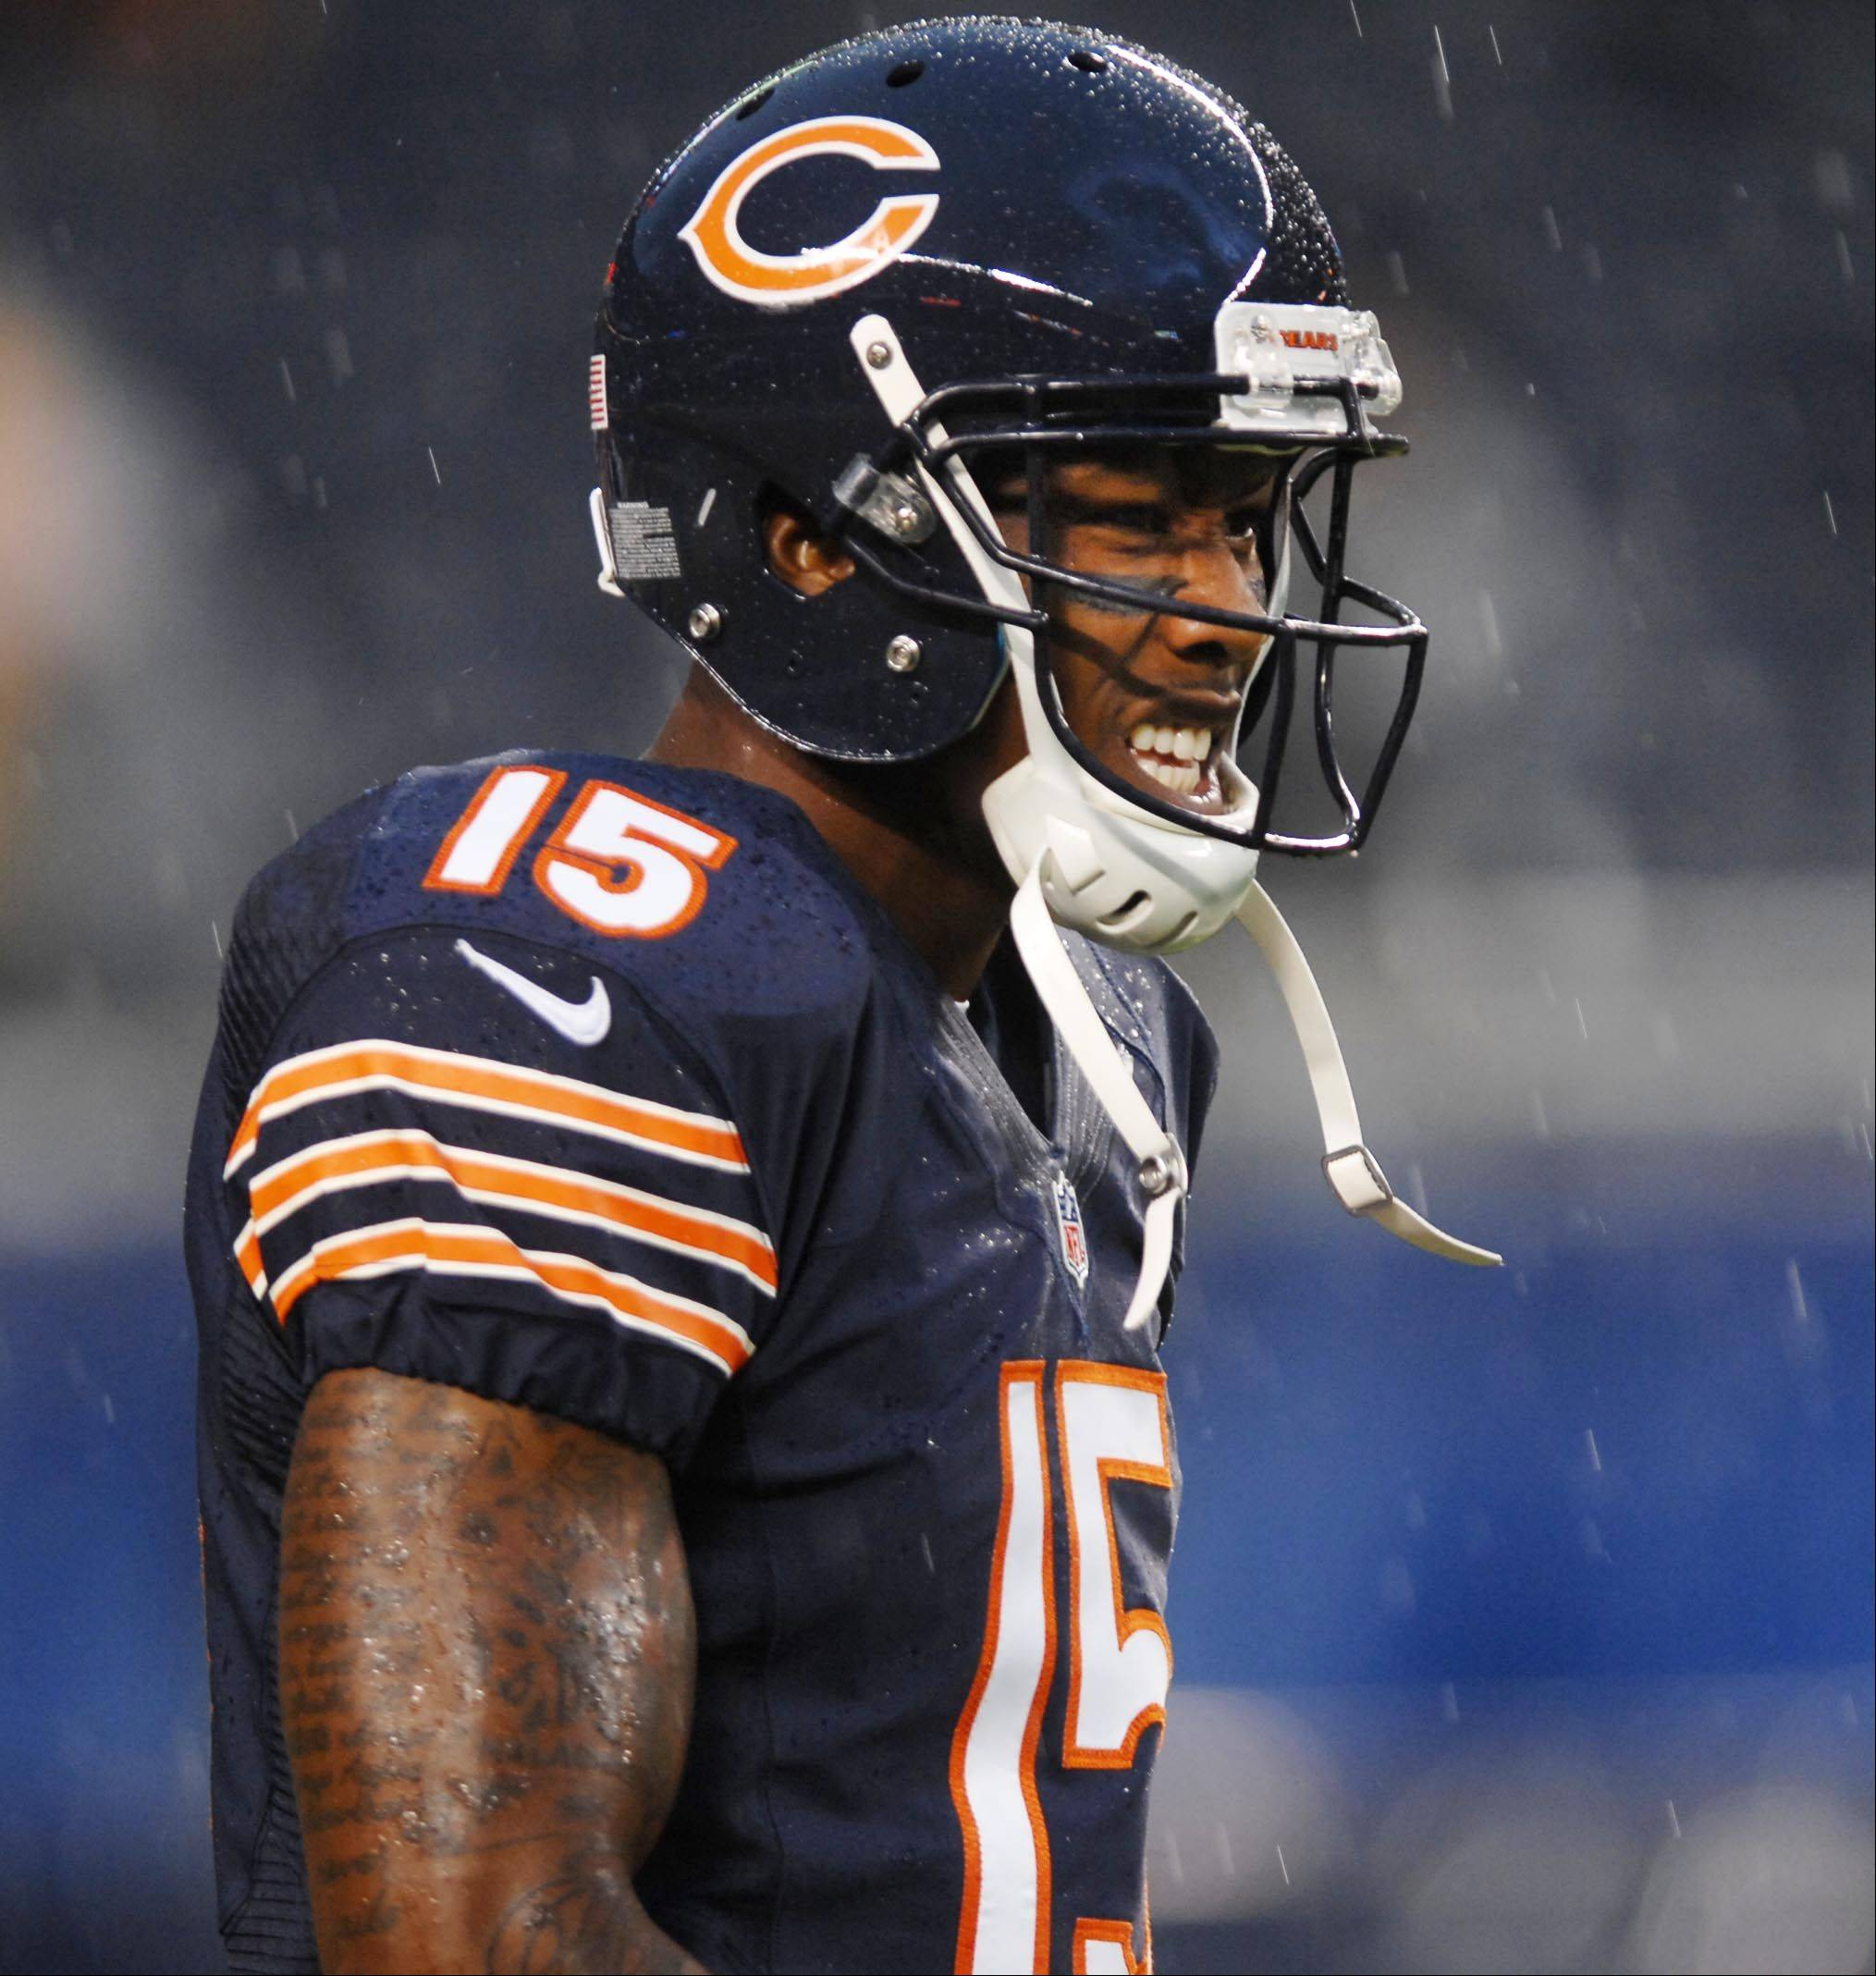 Bears wide receiver Brandon Marshall Thursday night before the first preseason game at Soldier Field in Chicago.